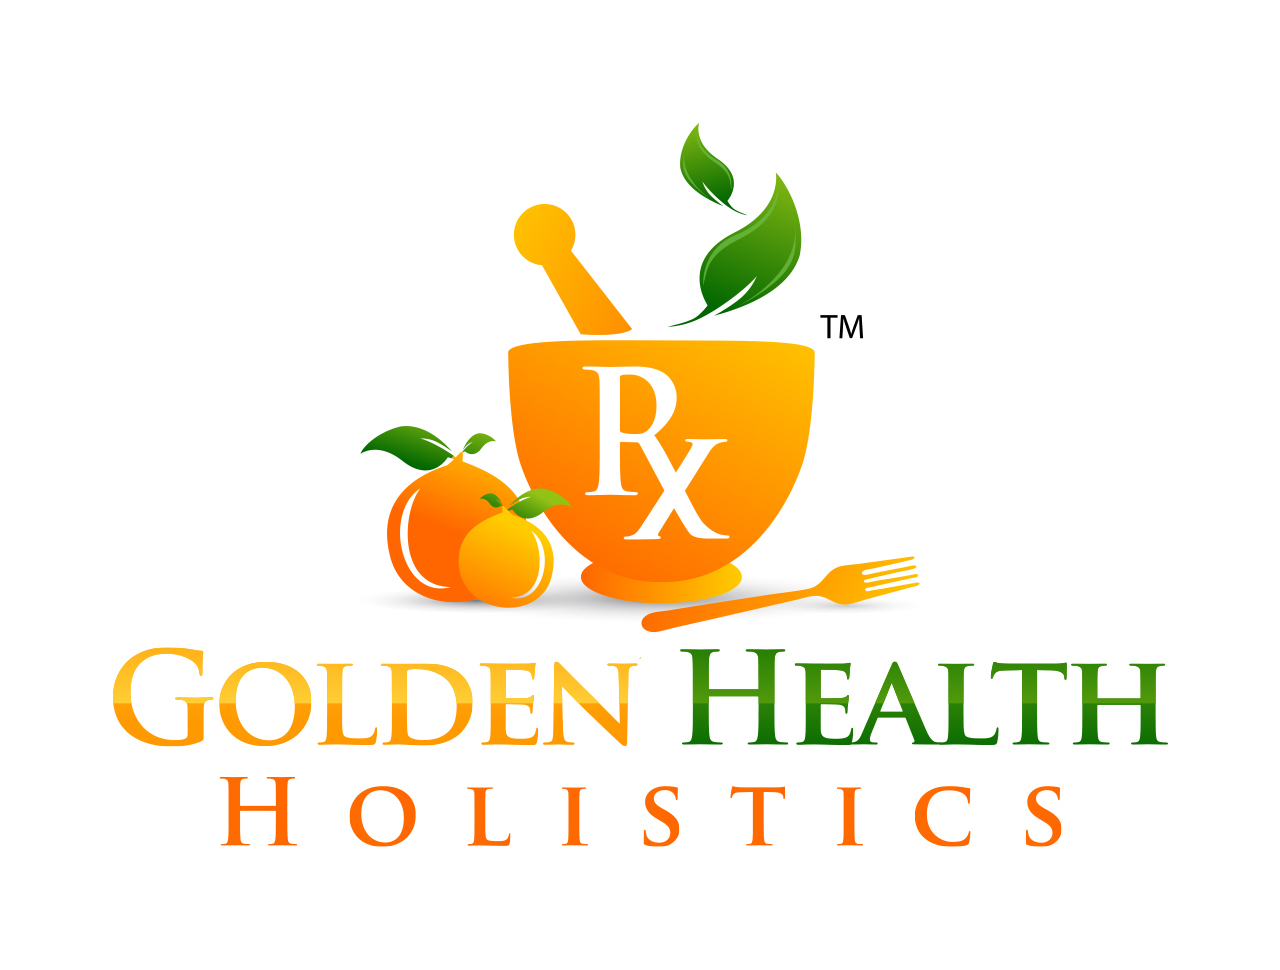 Golden Health Holistics